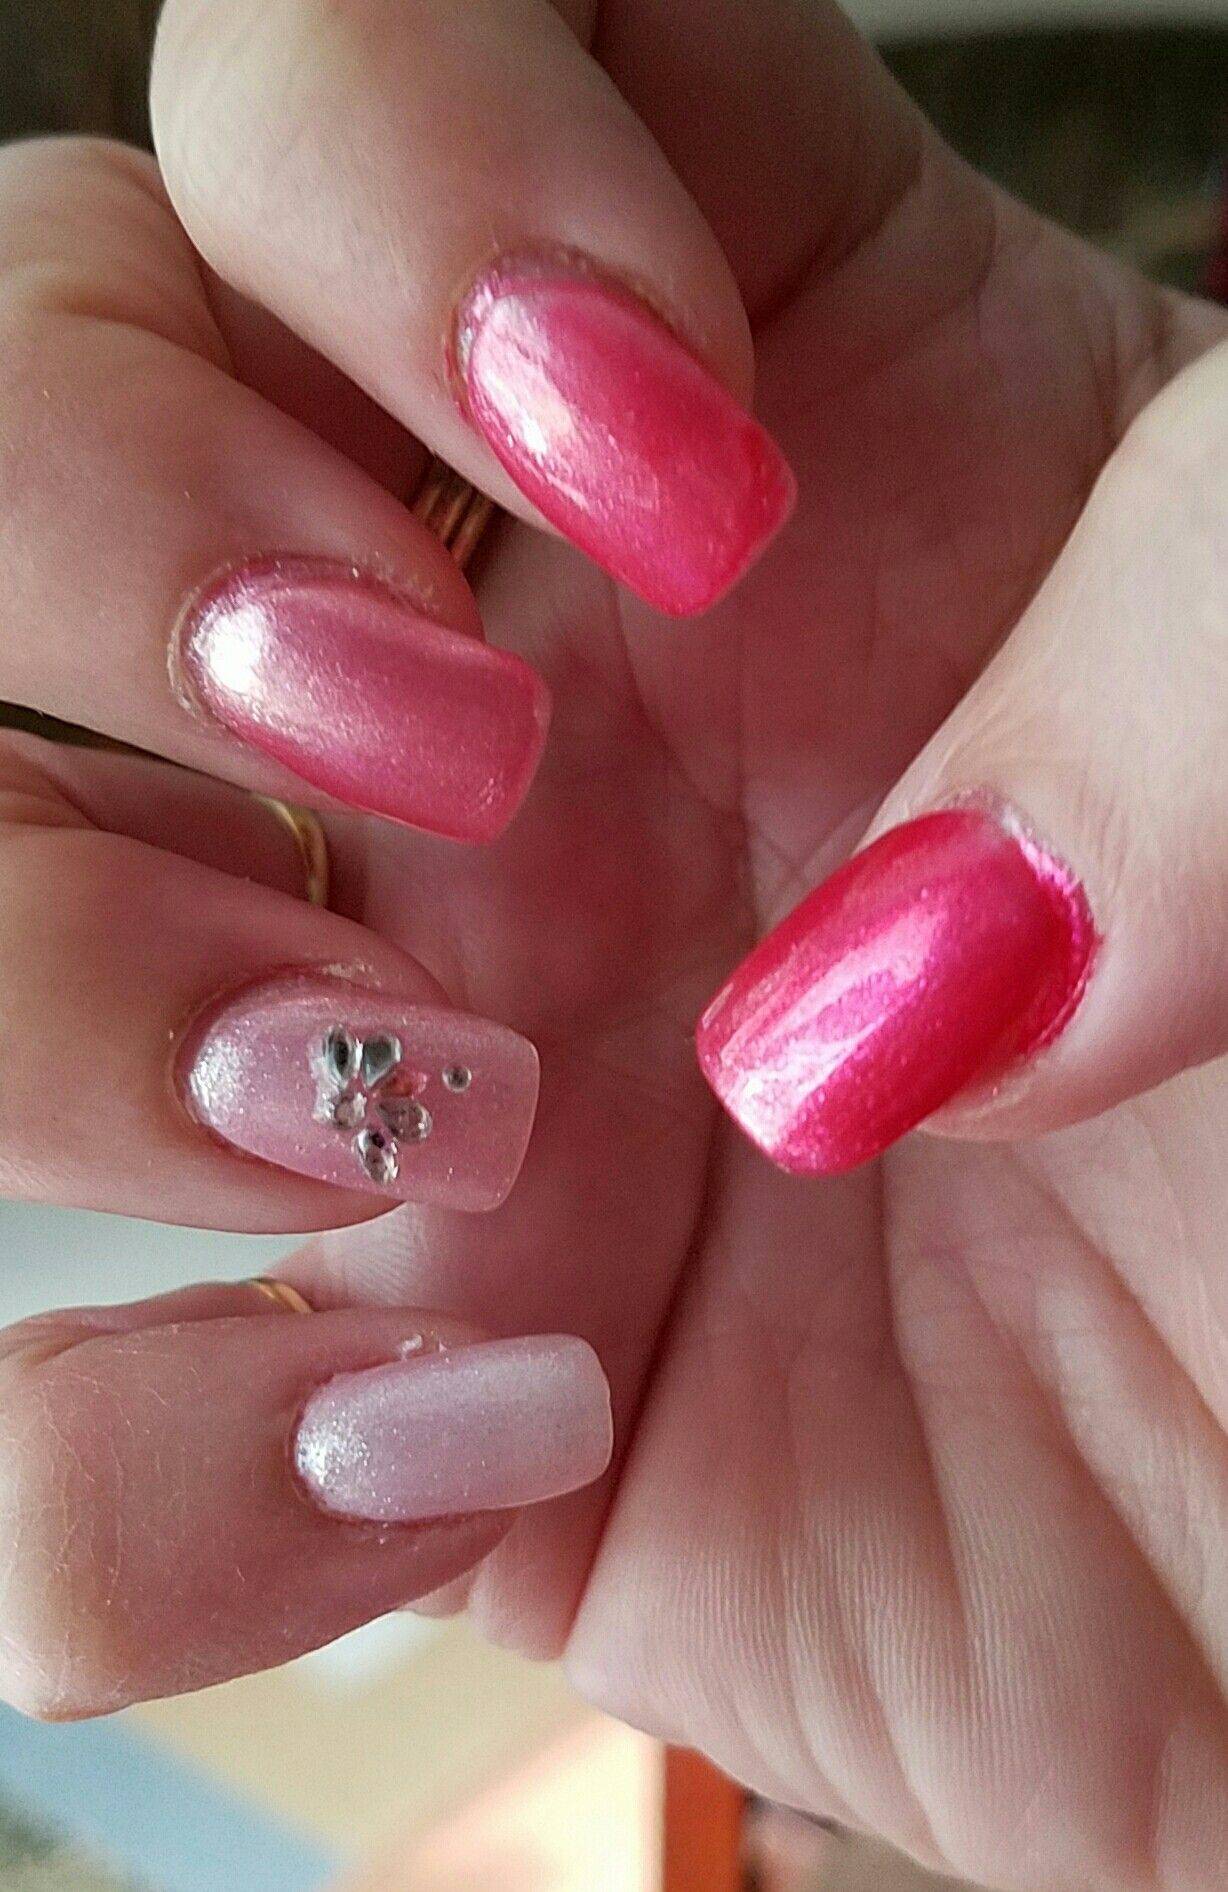 Gradient ombre nails,  manicure in shades of pink for October Breast Cancer Awareness month.